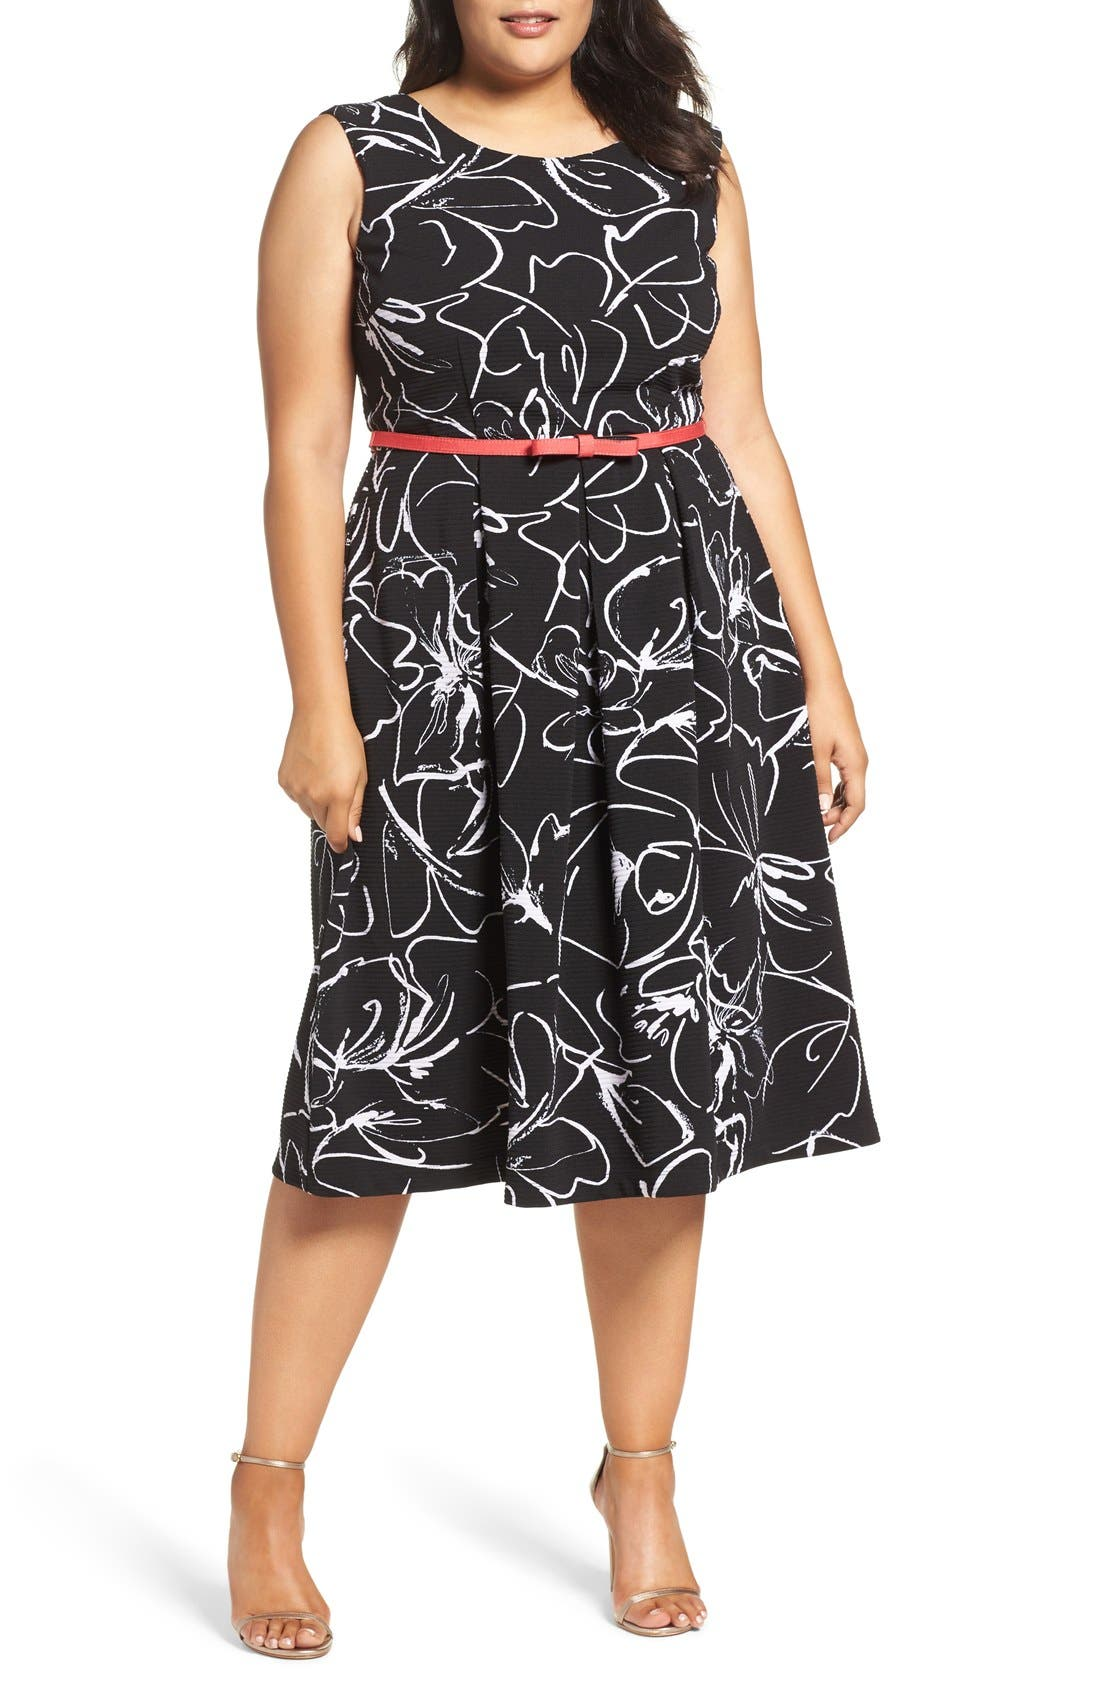 Alternate Image 1 Selected - Gabby Skye Print Fit & Flare Dress (Plus Size)